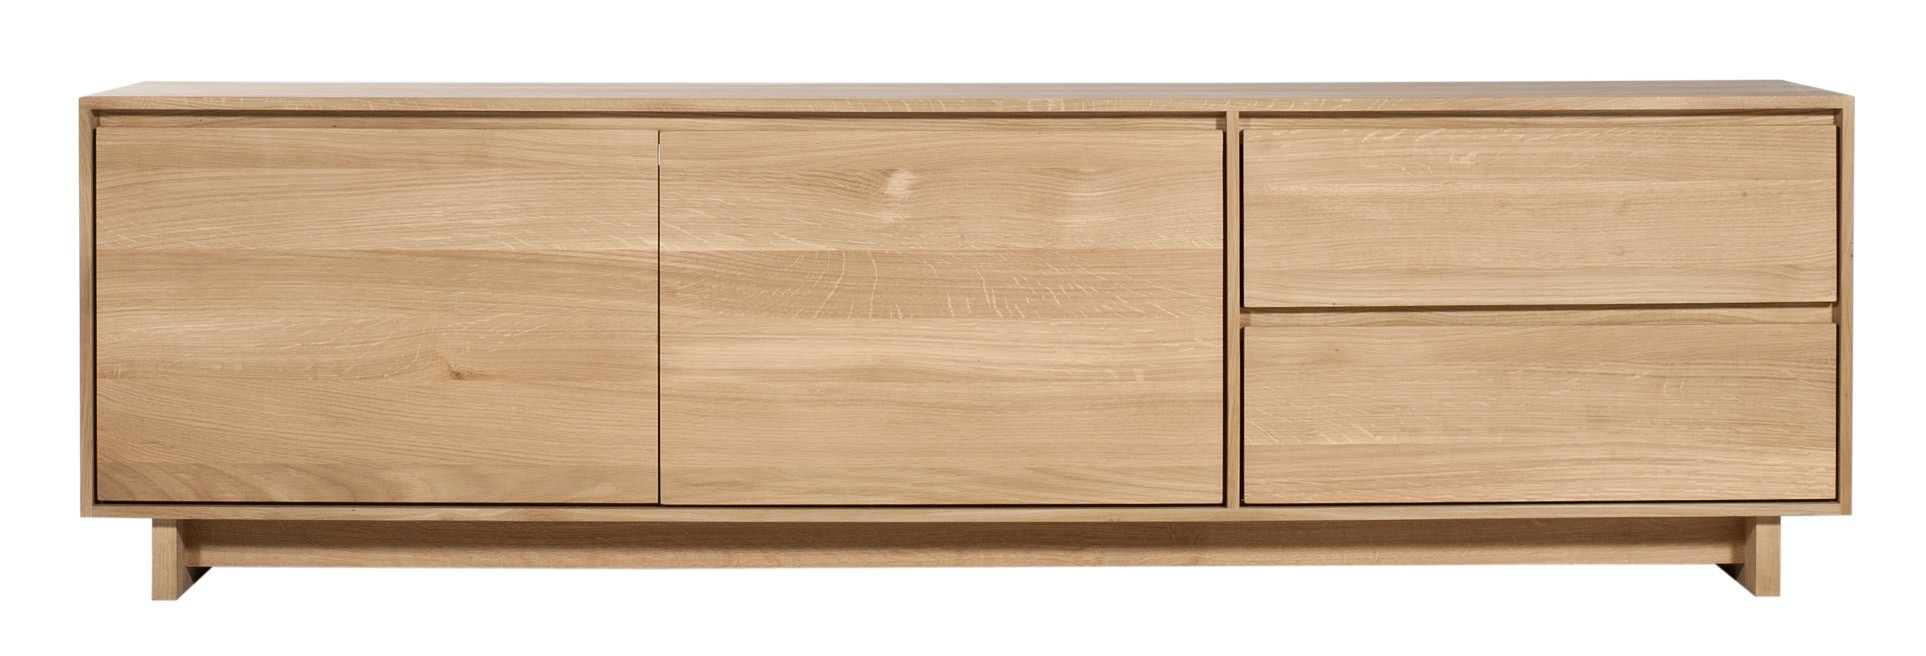 Meuble Tv Oak Wave D Ethnicraft 2 Porte 1 Porte Abattante 1  # Meuble Chene Tv Vintage